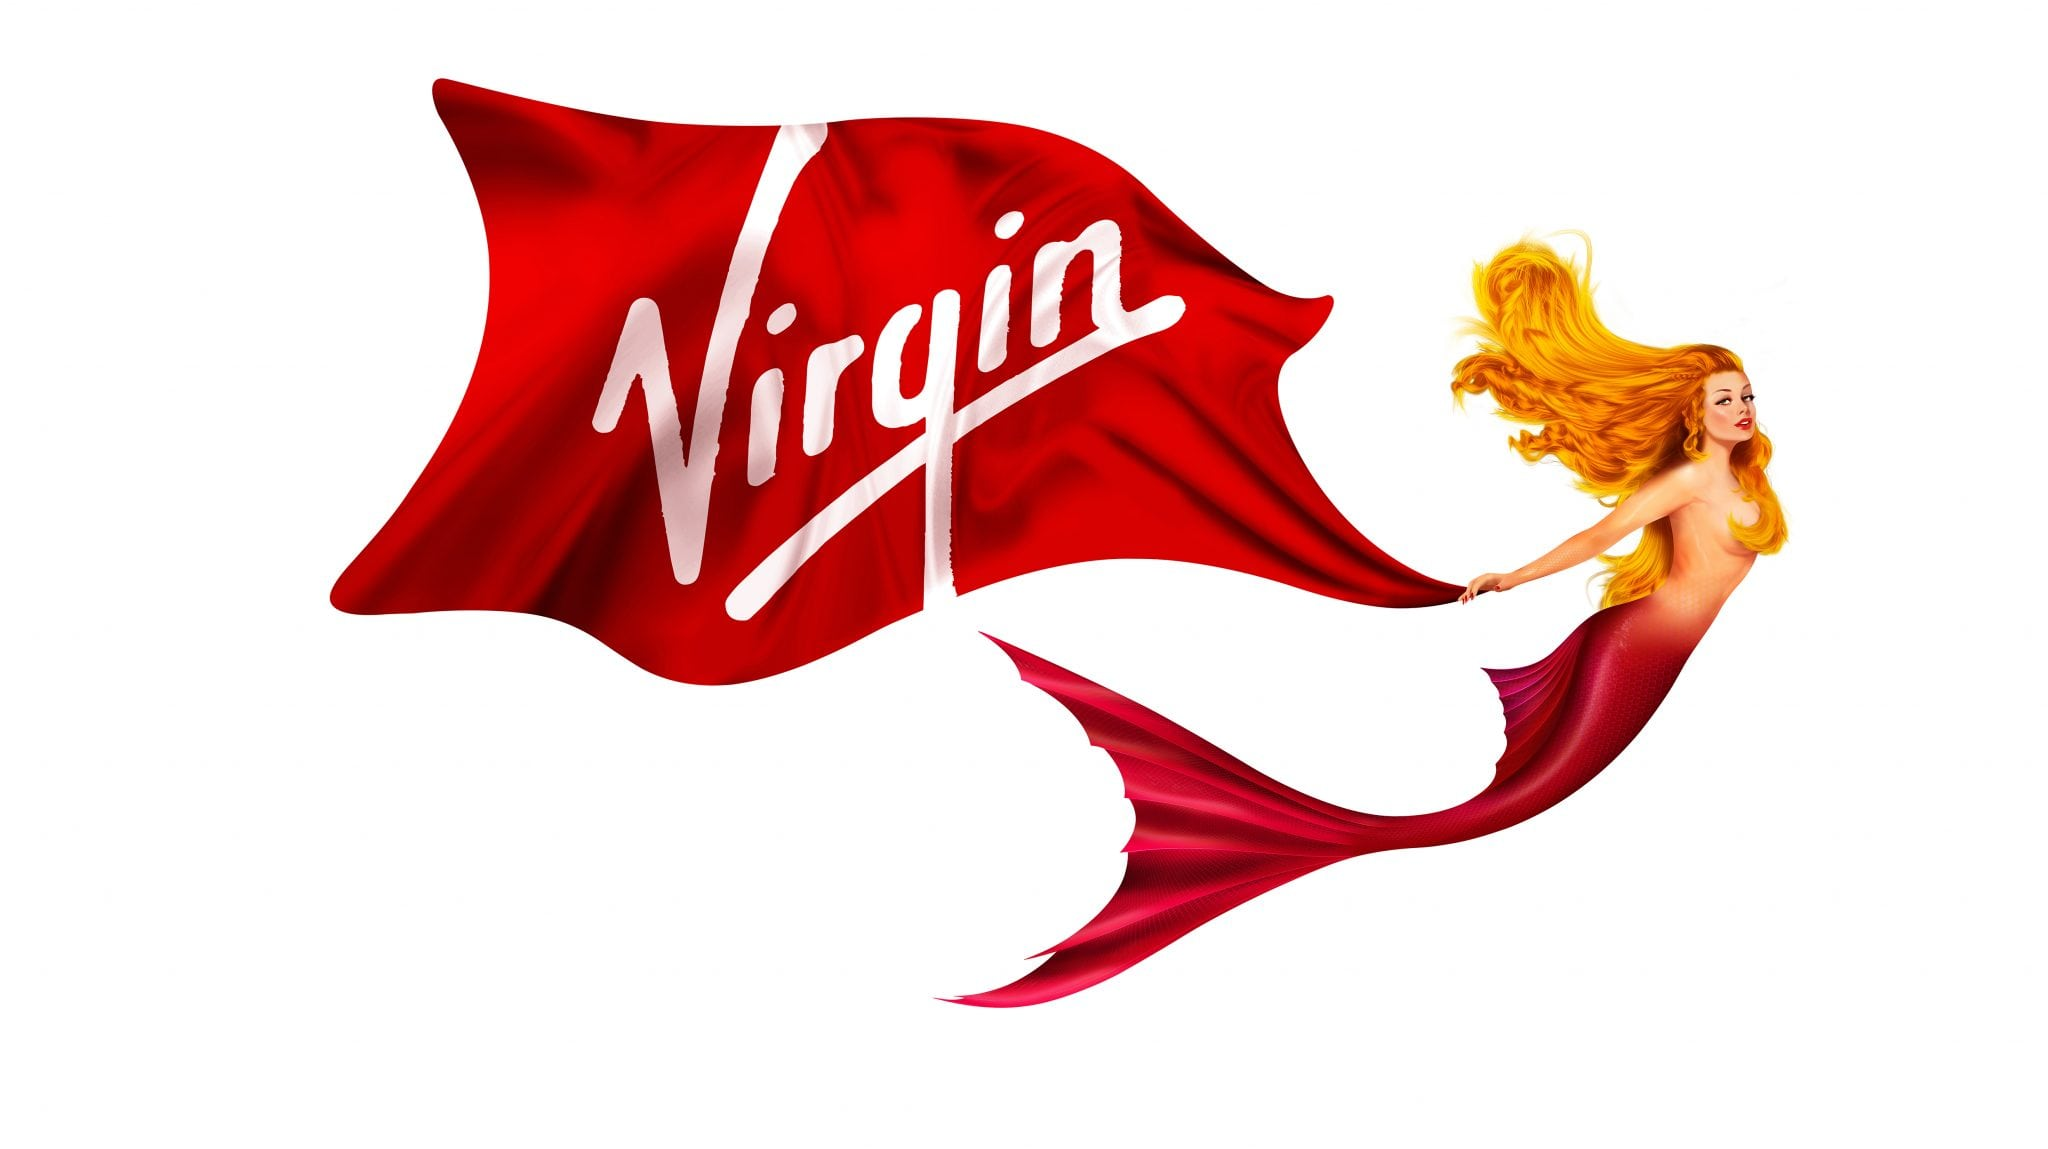 Alumnus designs for Virgin Voyages